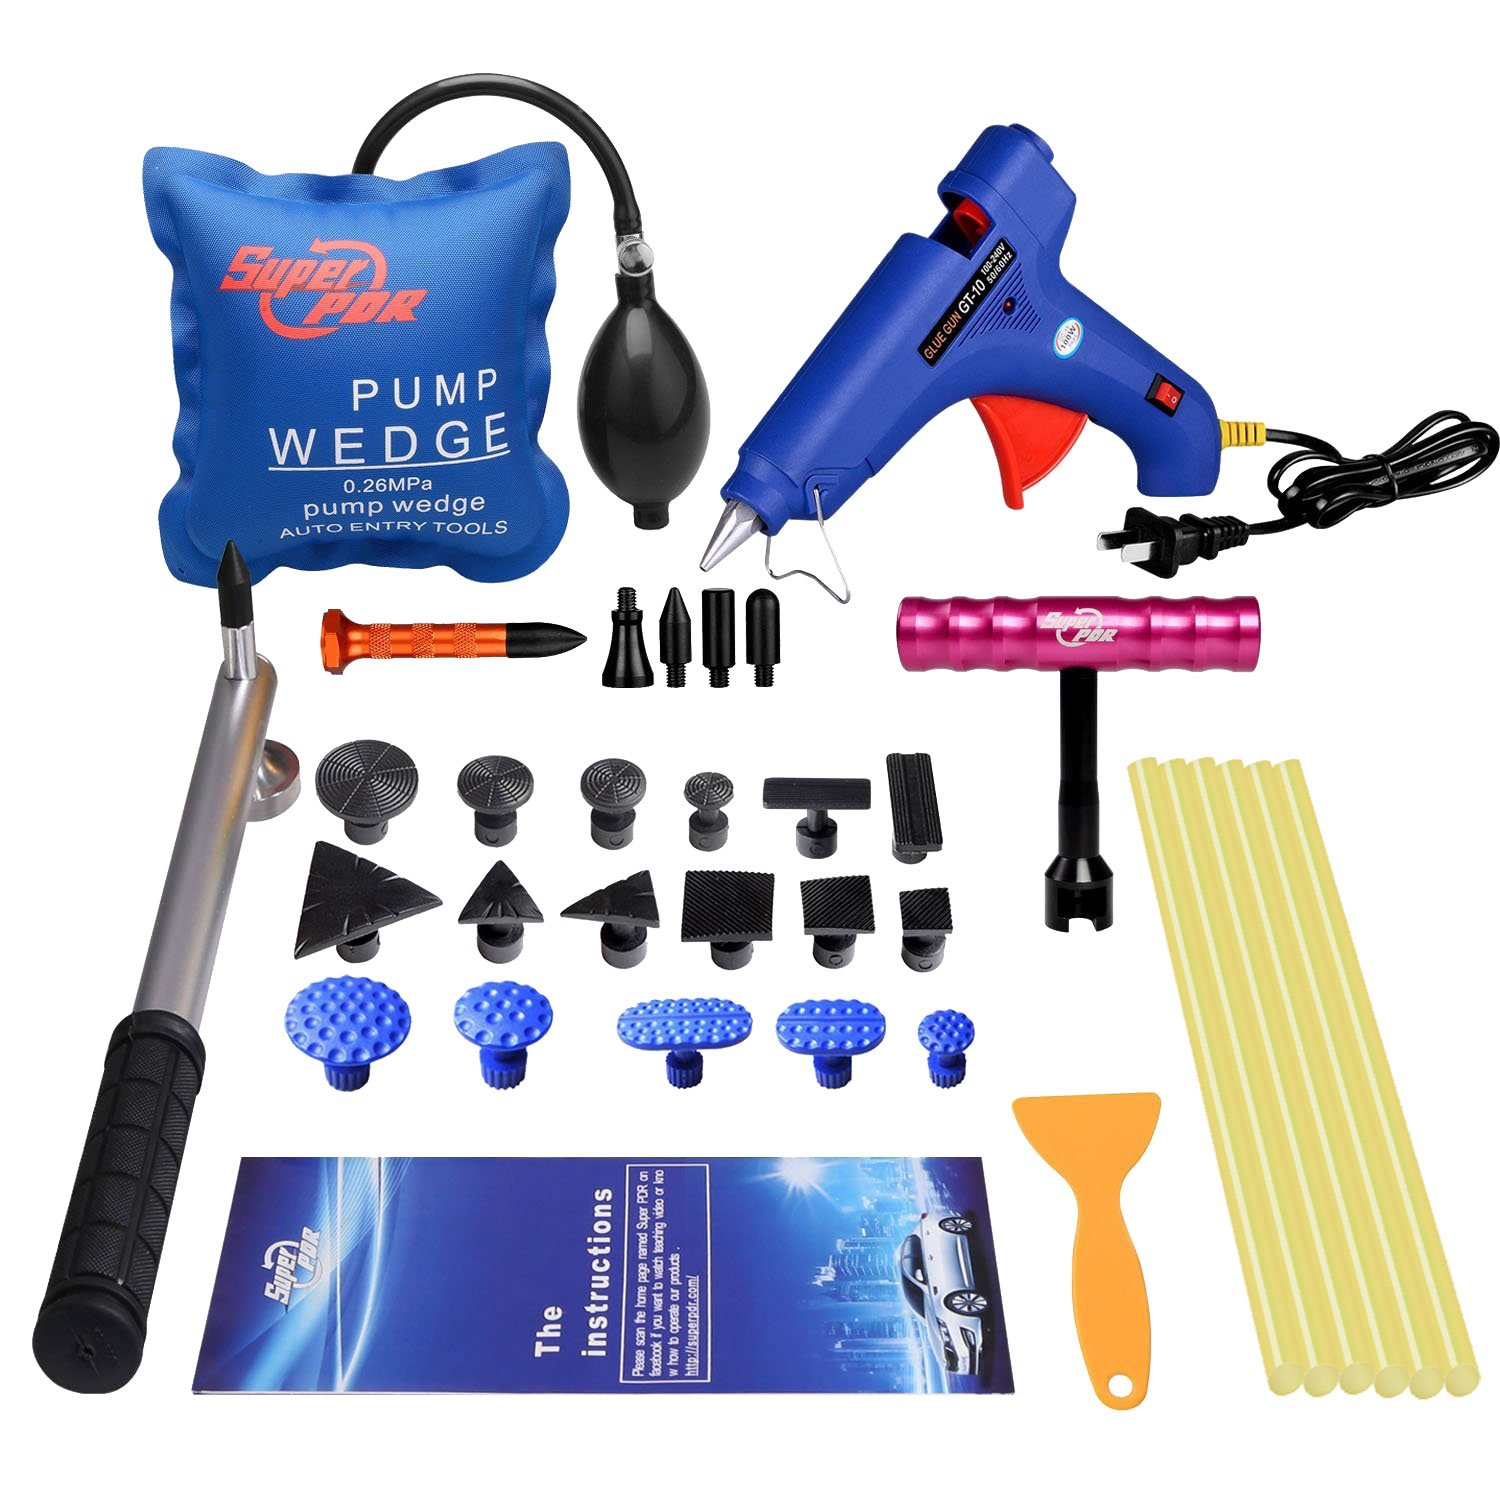 Super PDR 34pcs Auto Car Paintless Dents Repair Removal Tools Kits Dent Puller Mini T Slide Hammer With Suction Pull Tabs